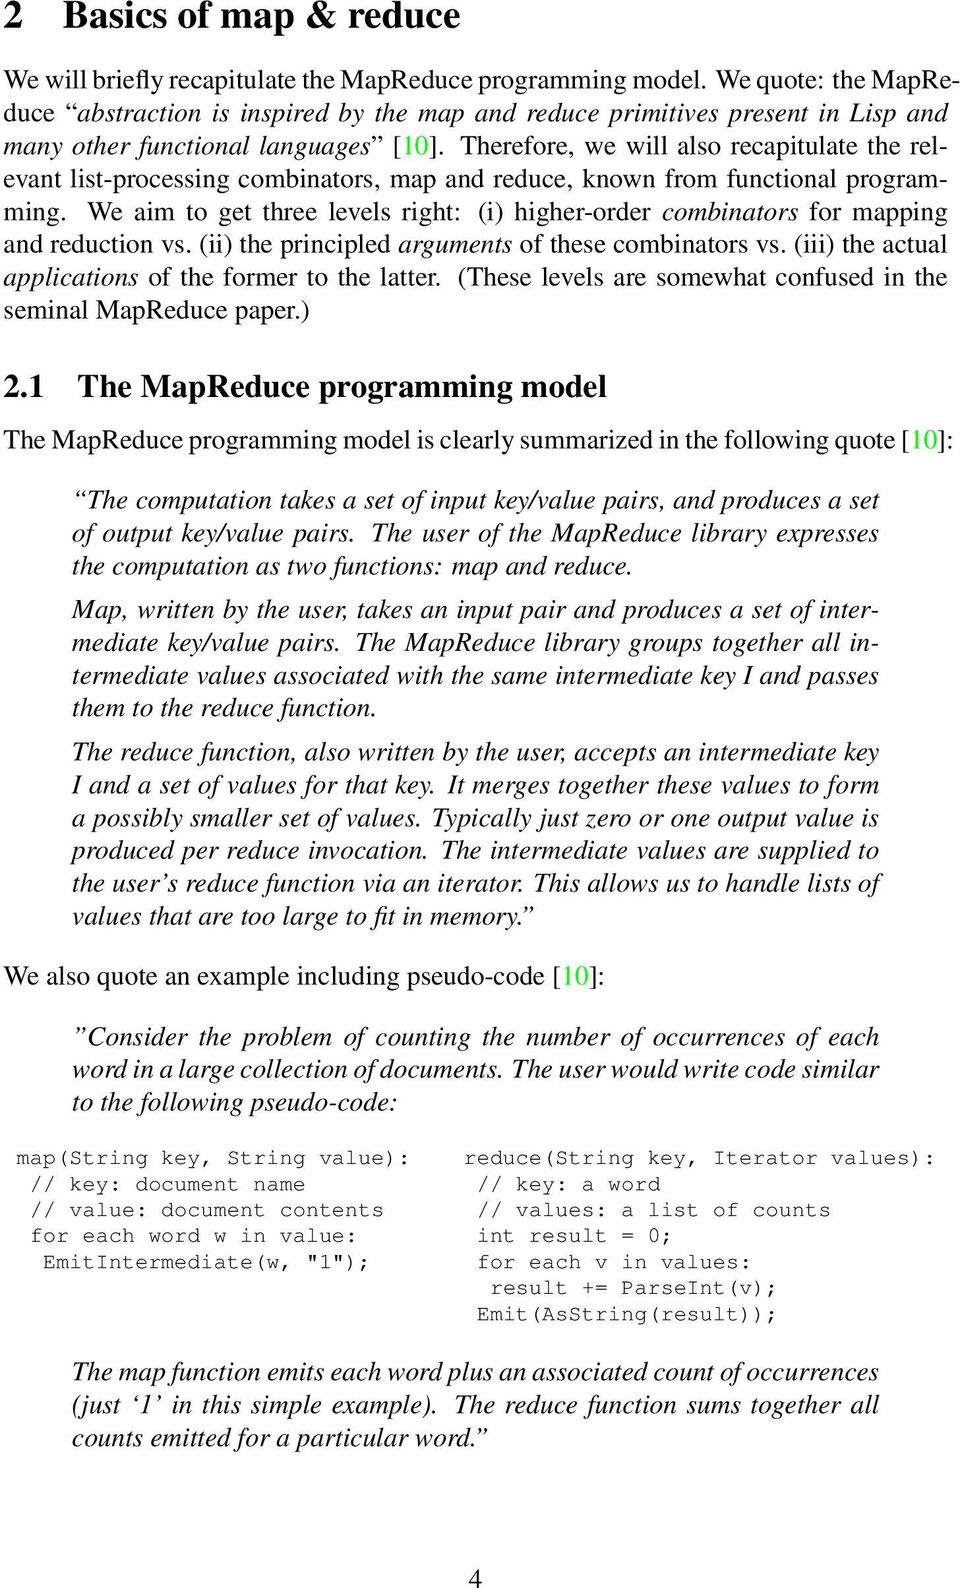 Therefore, we will also recapitulate the relevant list-processing combinators, map and reduce, known from functional programming.